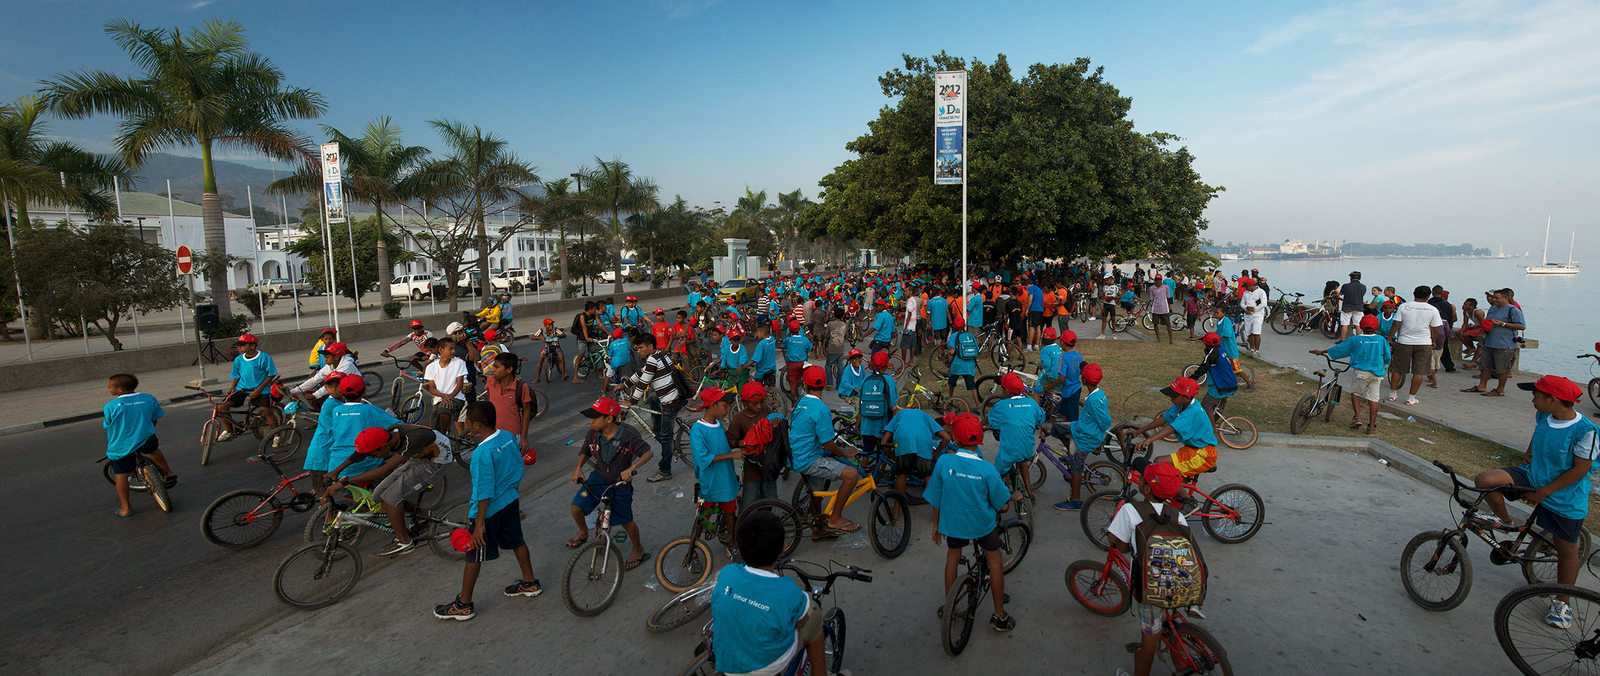 Tour de Timor 2012 - Ride for Peace Panorama